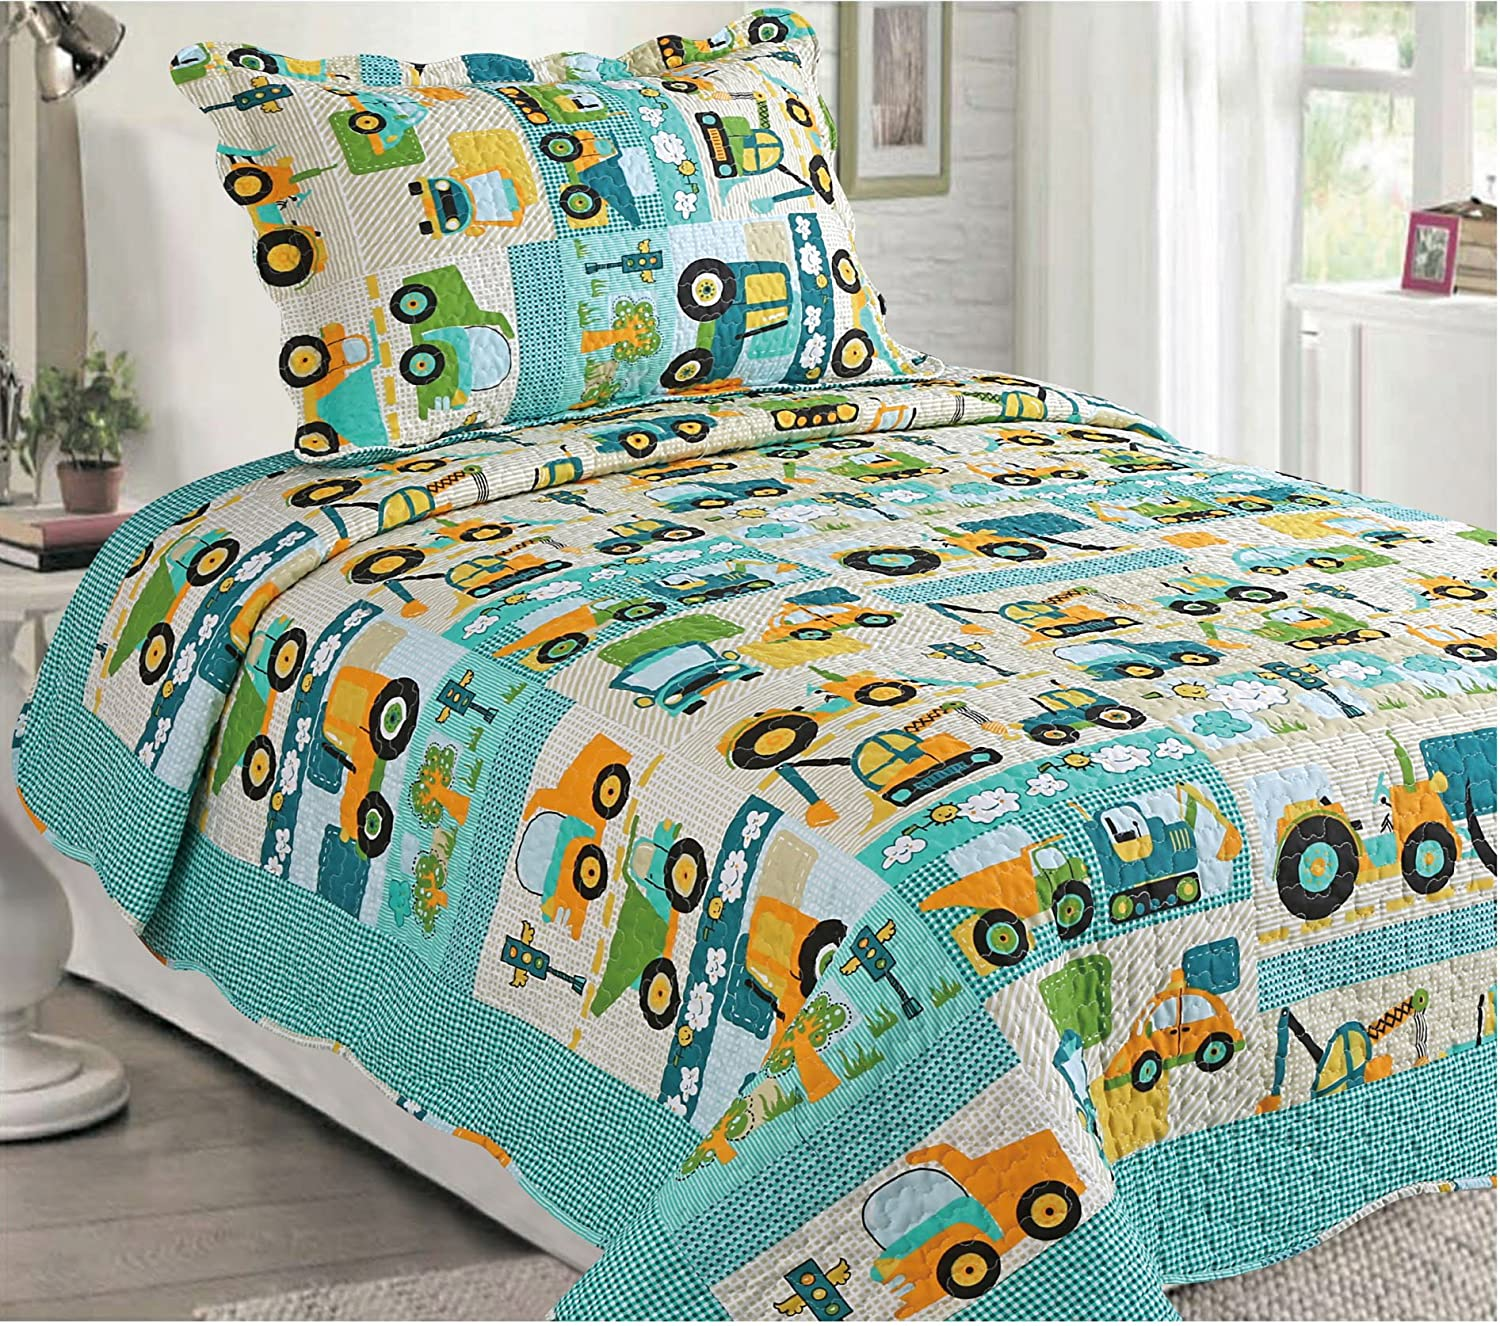 2 Piece Multicolor Construction Tractor Cars Kids Quilt Bedspread Coverlet Set